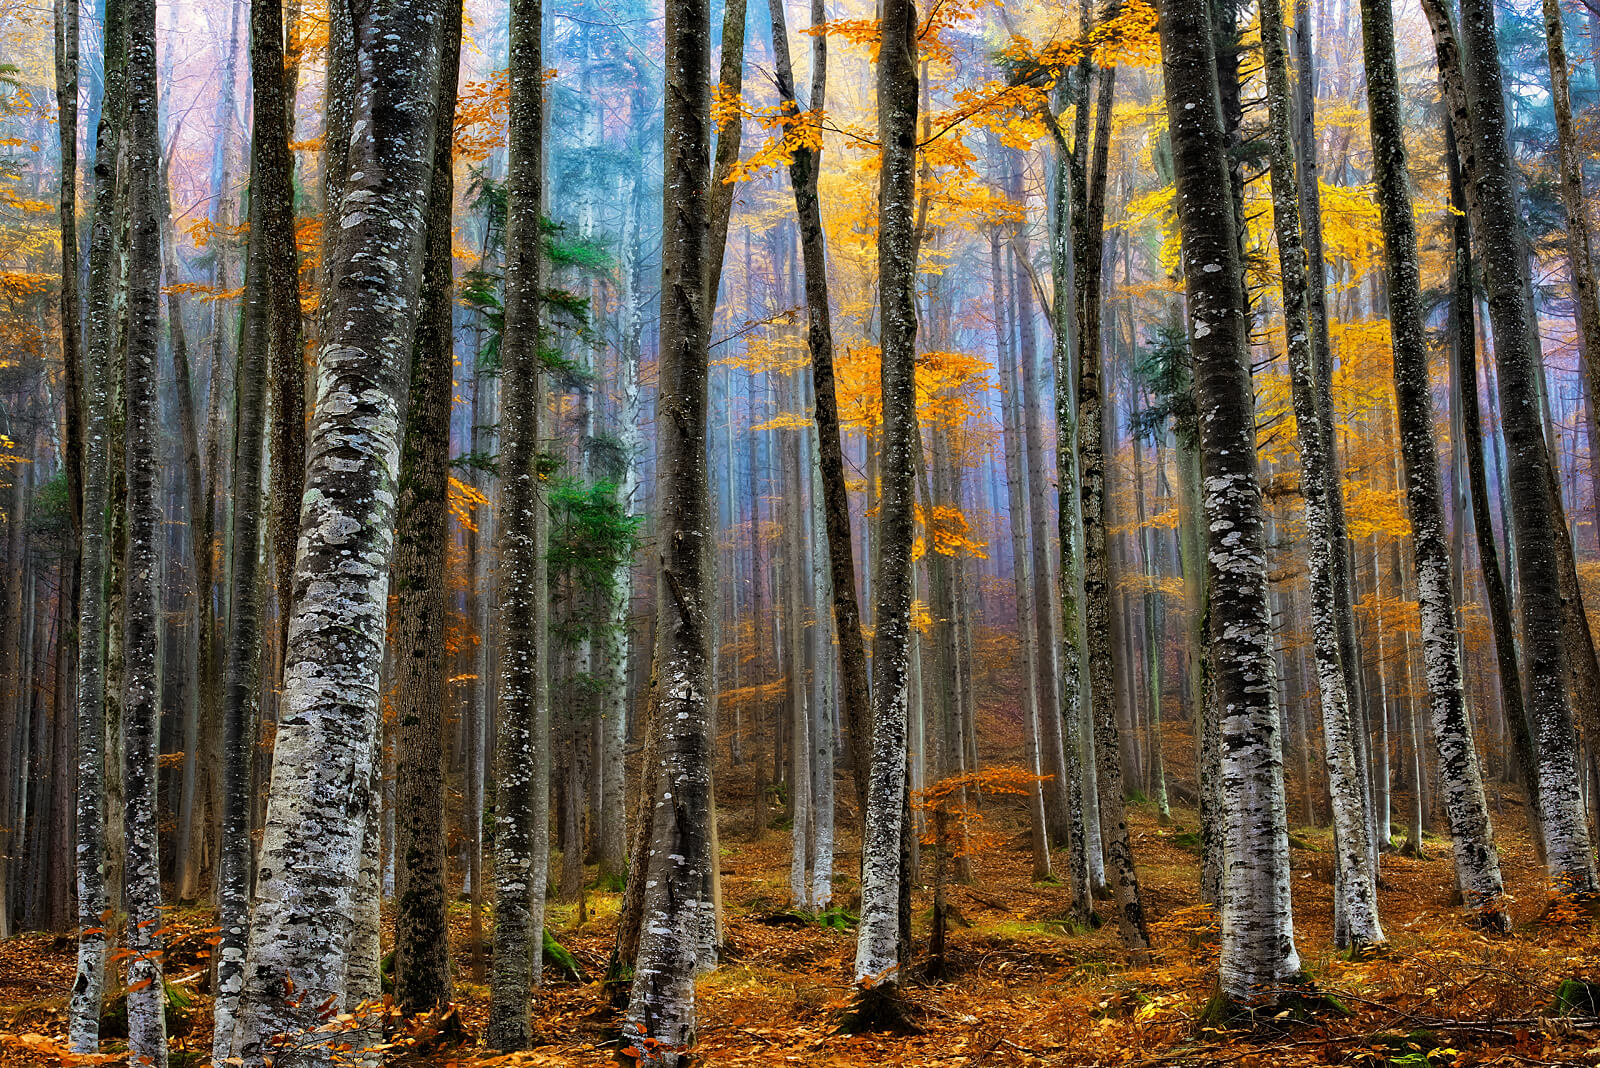 We are All Different in the Same Forest